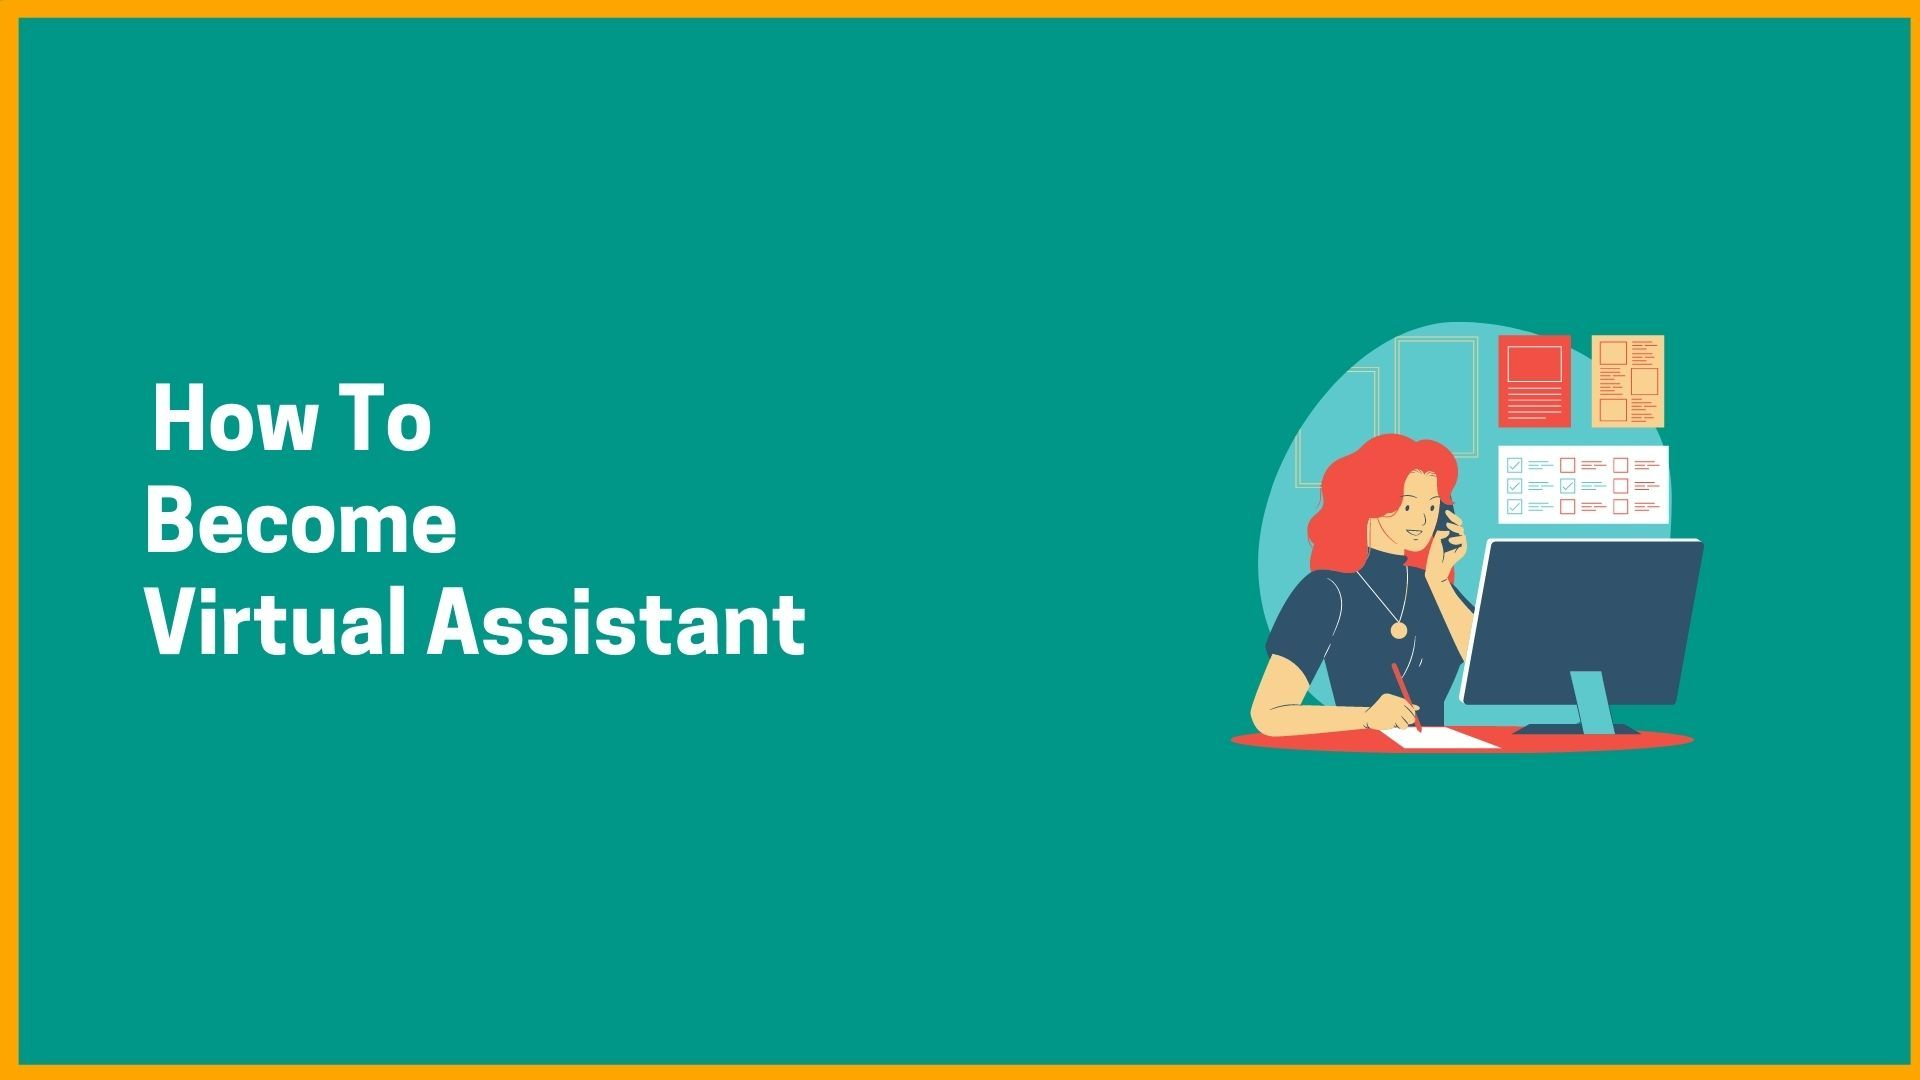 How To Become Virtual Assistant